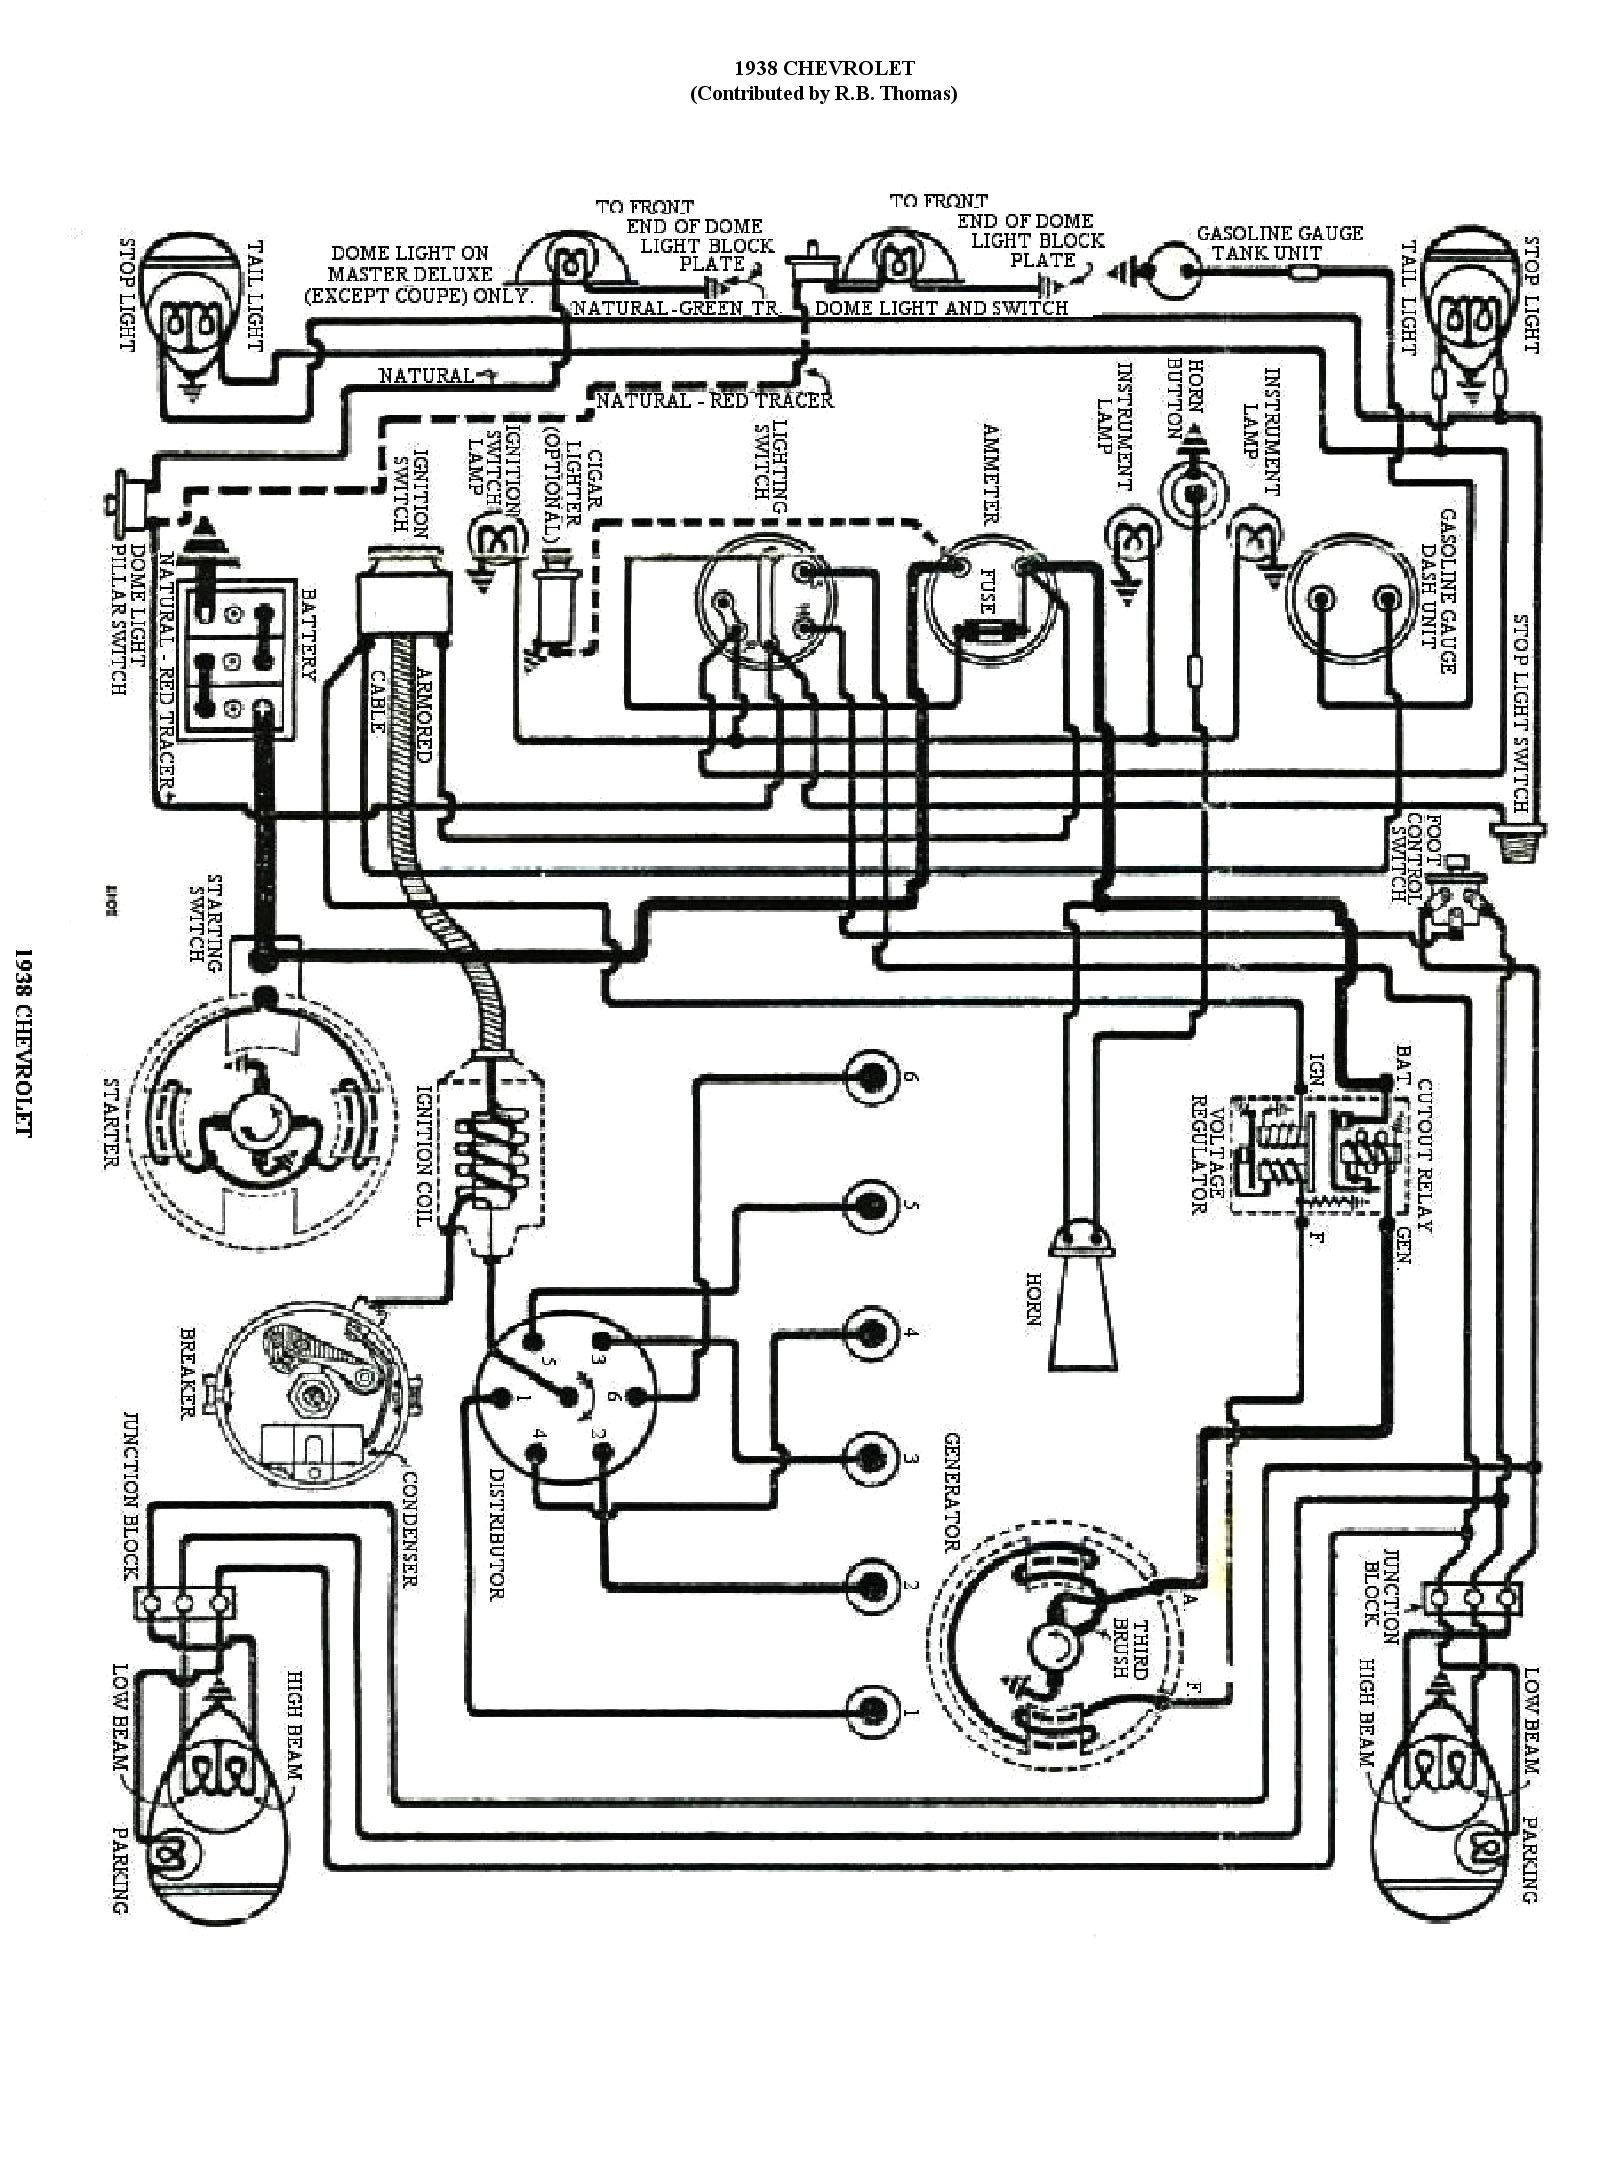 chevy wiring diagrams Residential Electrical Meter Wiring Diagram 1938 wiring